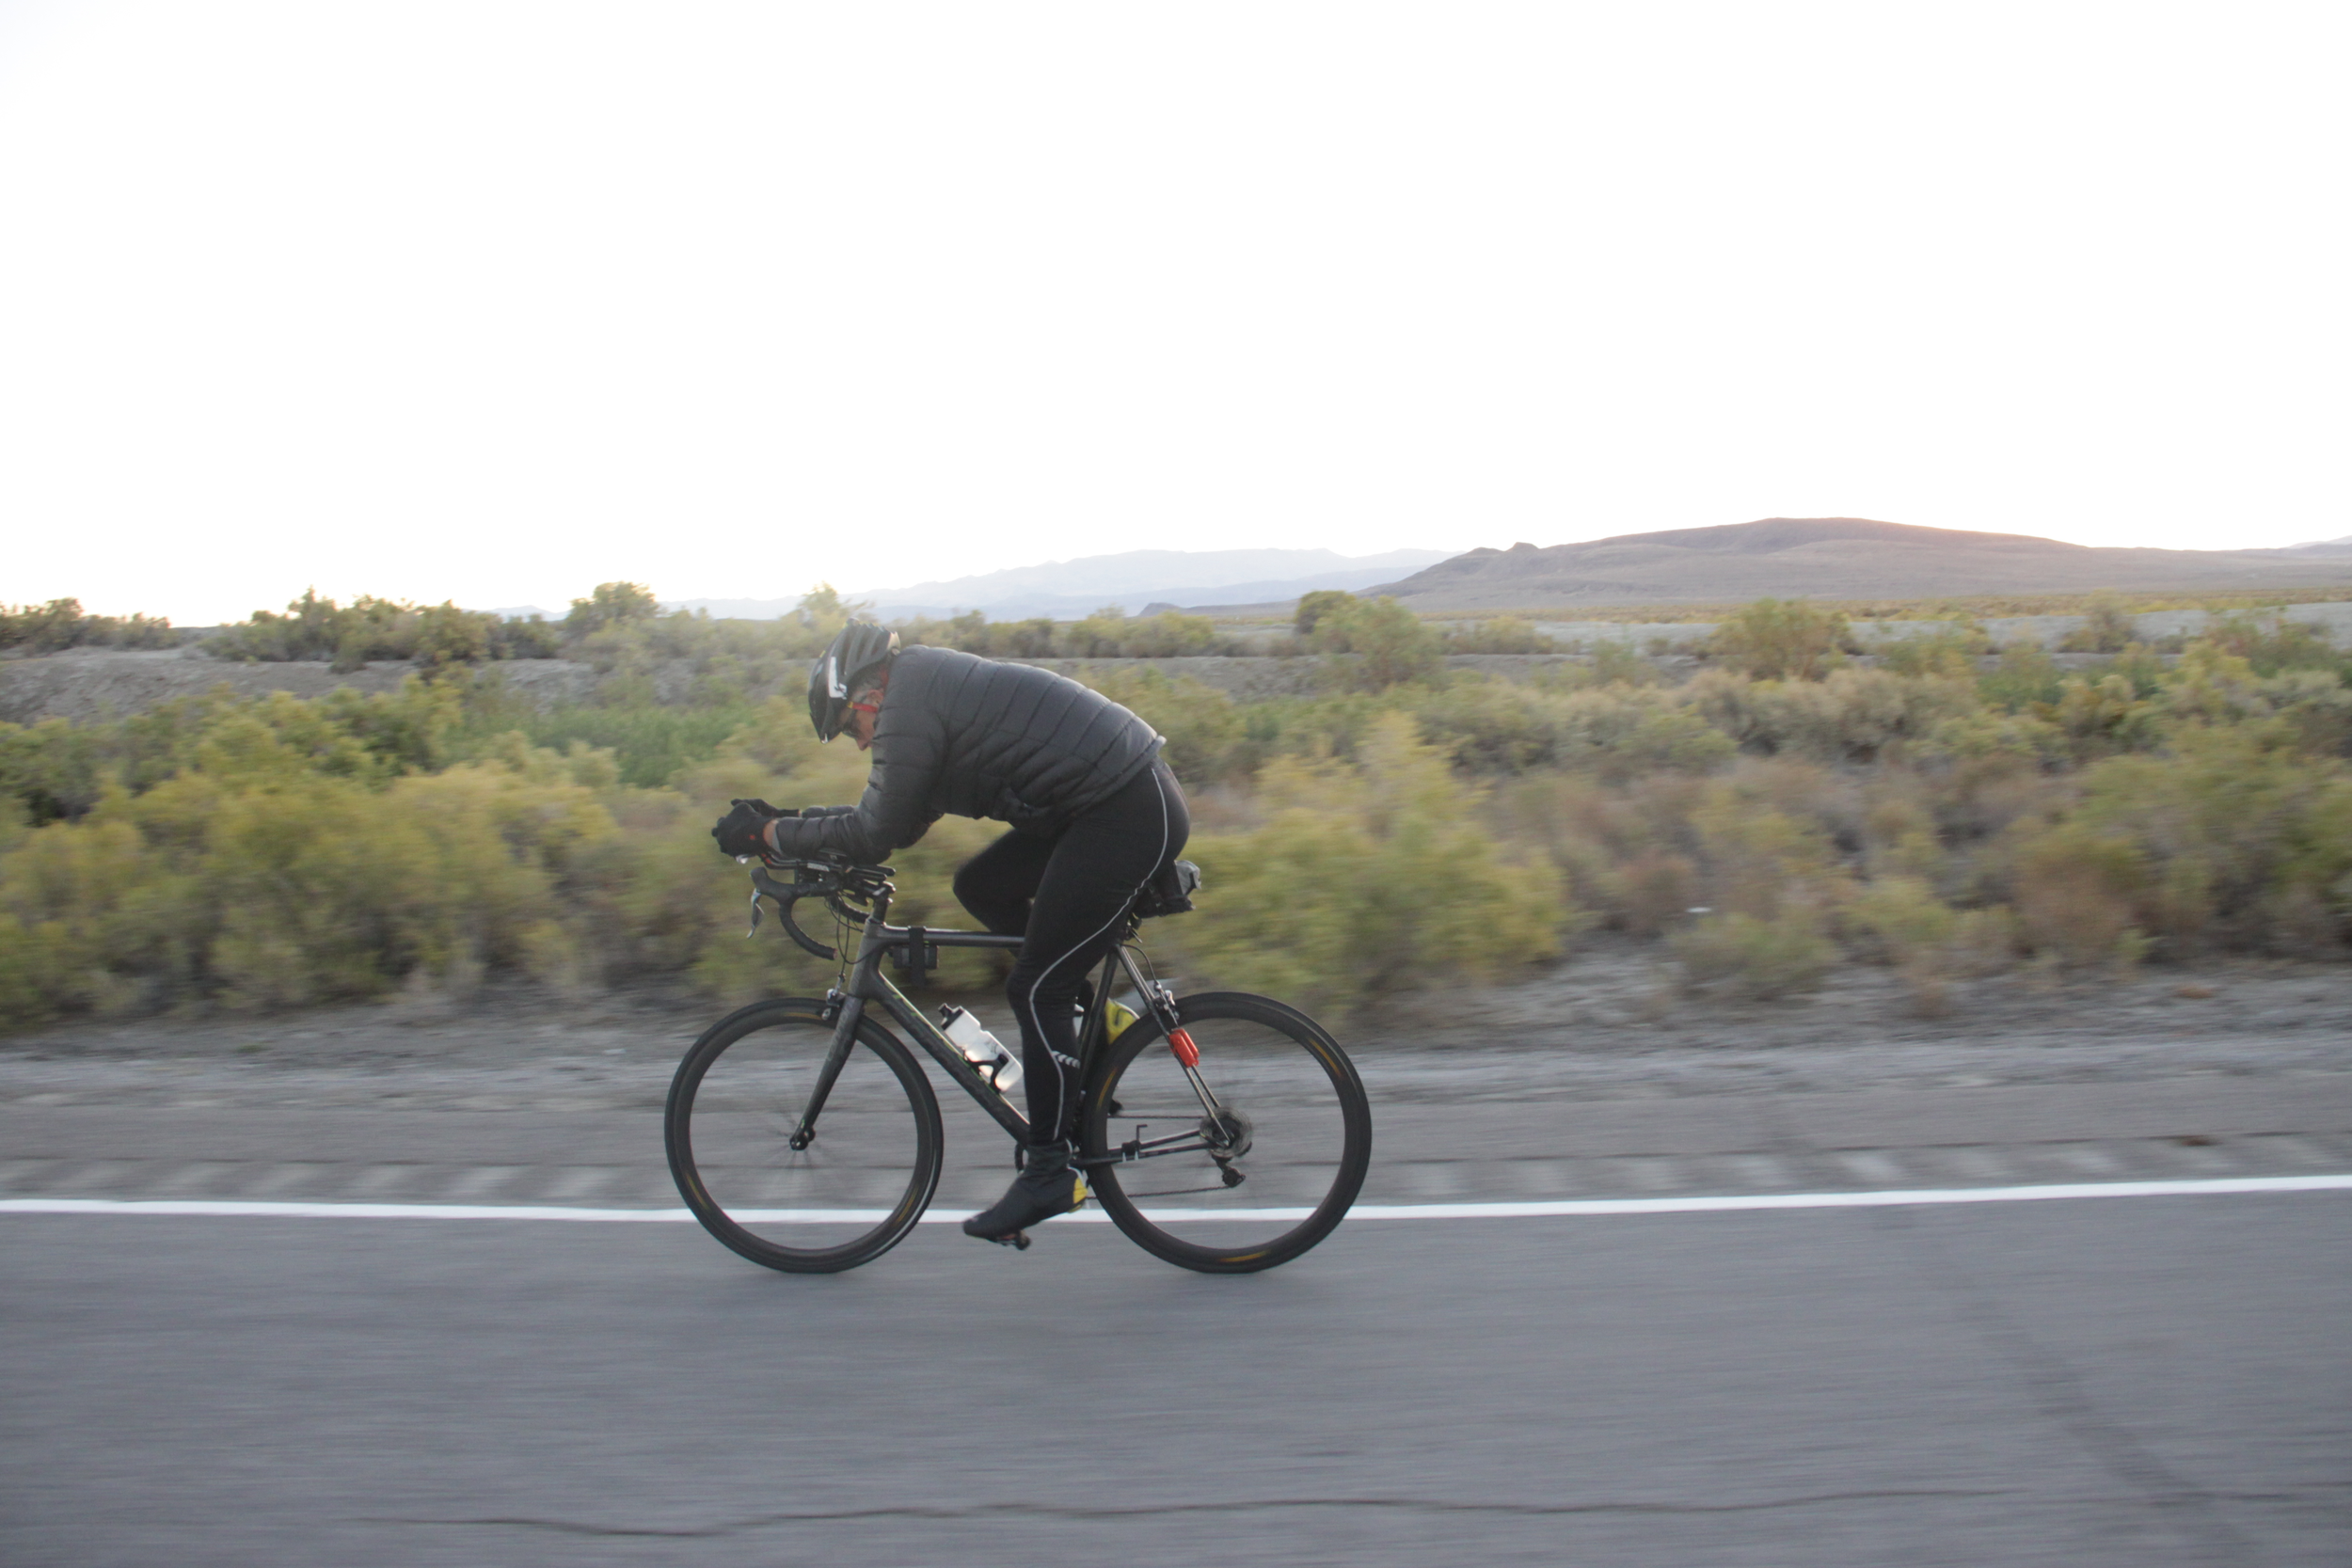 Rich Staley, riding at dawn into Fallon near the end of stage 6.